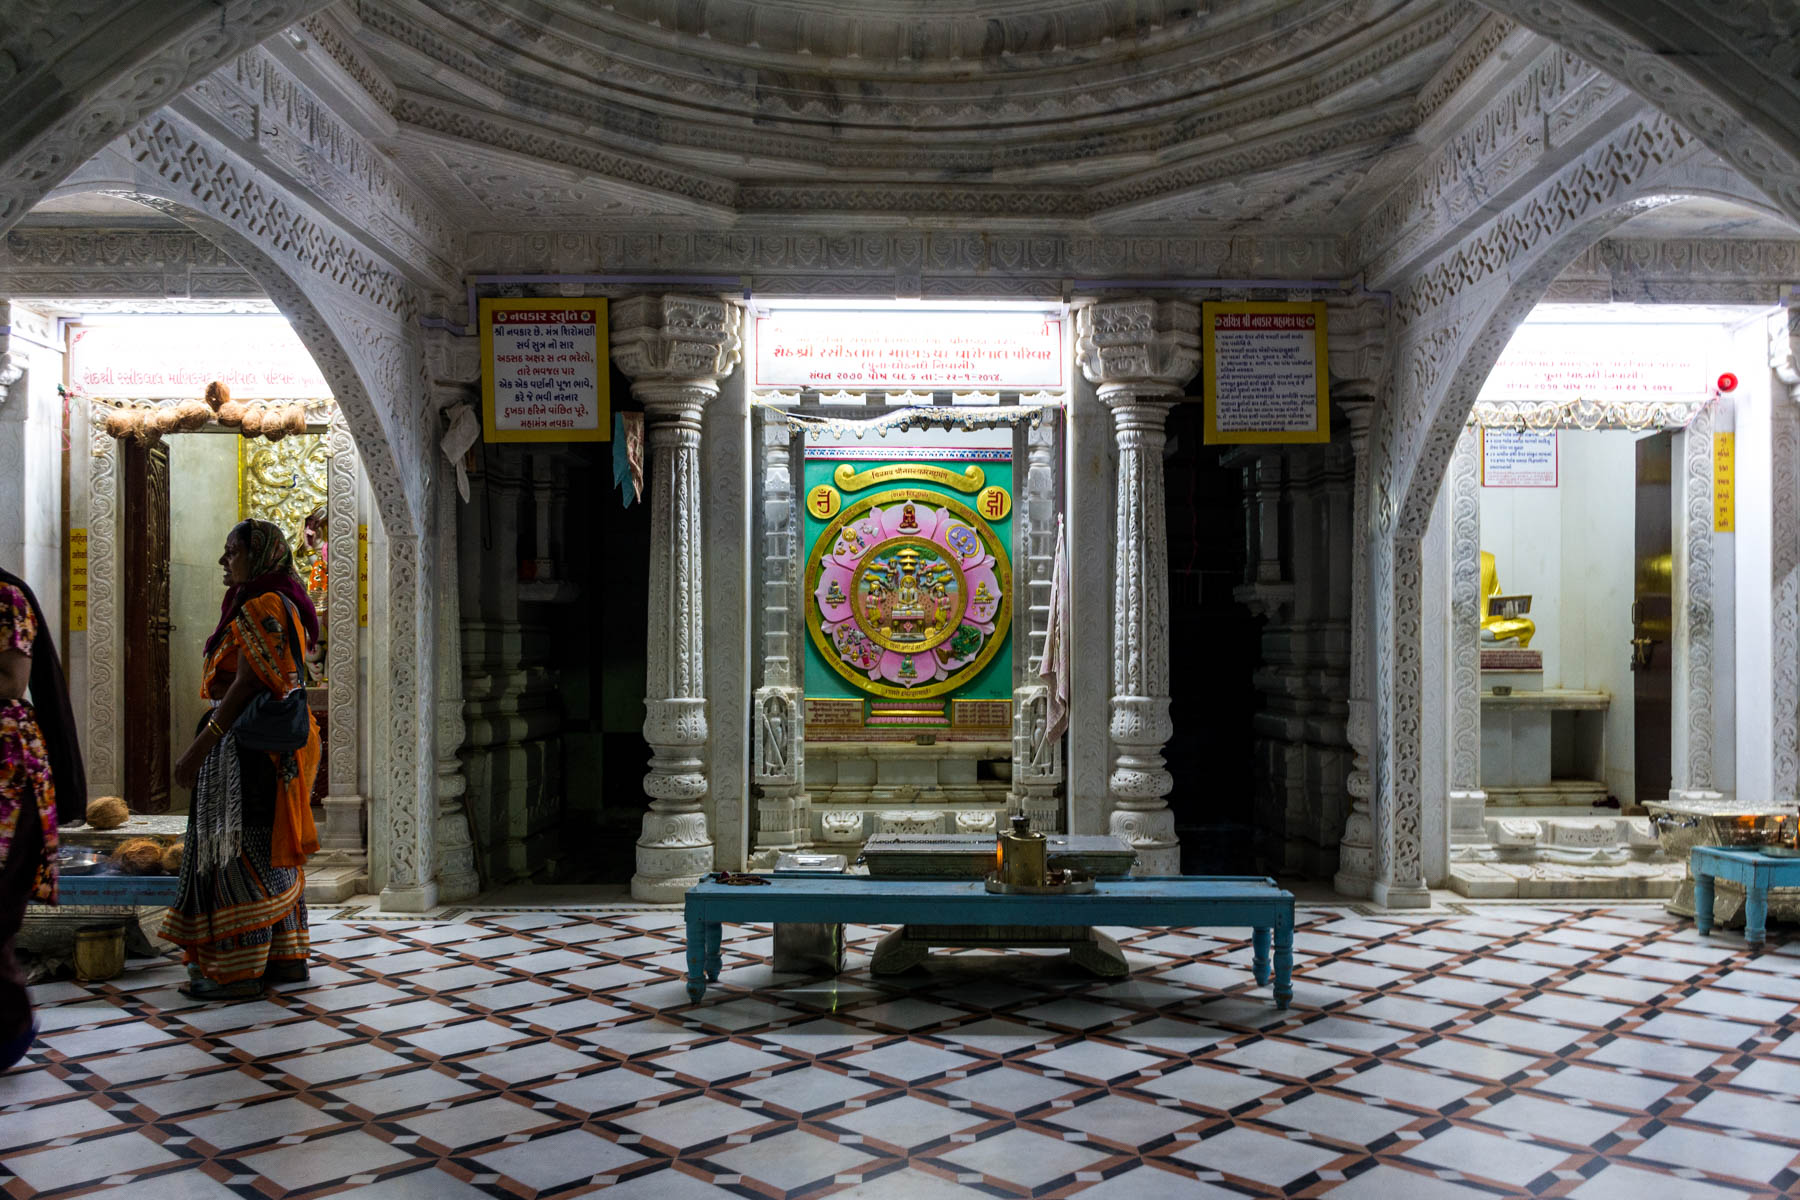 Jain pilgrimage in Palitana, India - A temple at the base of the mountain in Palitana - Lost With Purpose